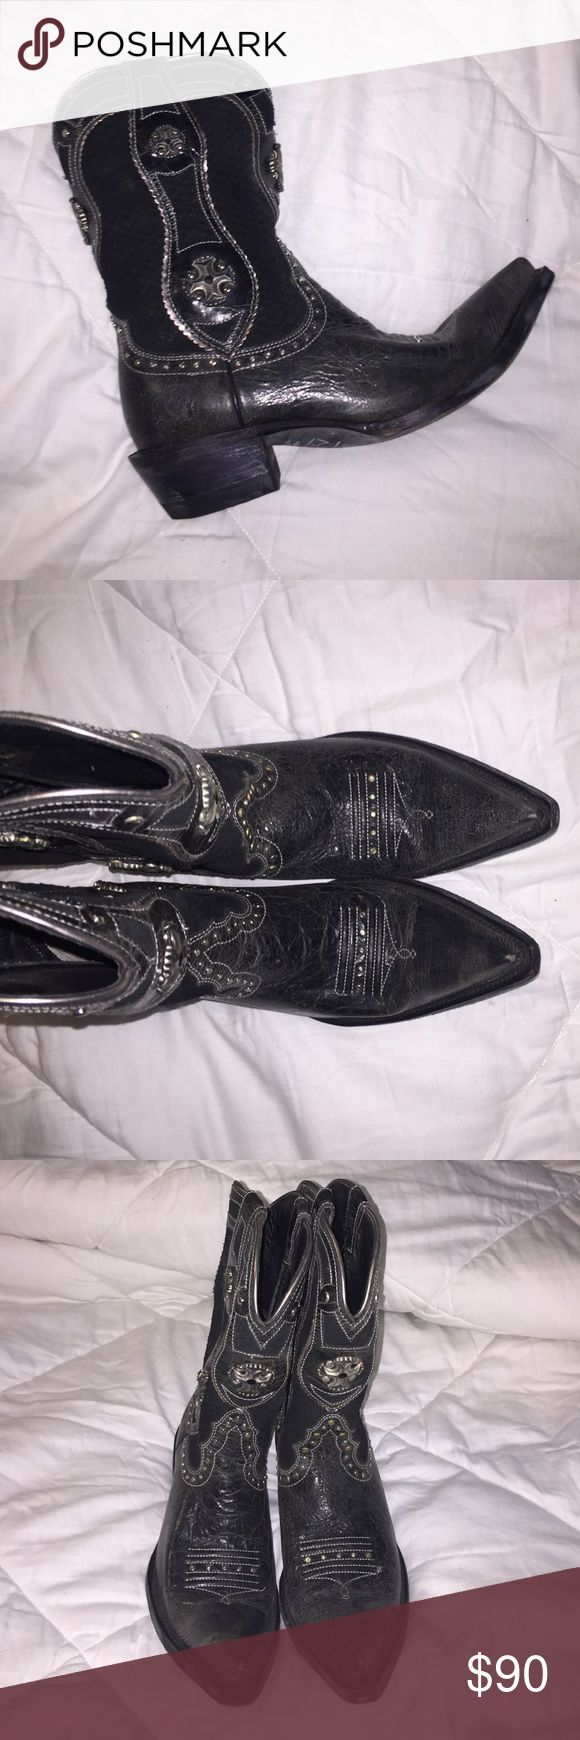 Black cowboy boots These boots look great with a short dress or jeans. I've only worn them a couple of time, so they still look and feel brand new. Reasonable offers are welcome😊 Ariat Shoes Heeled Boots